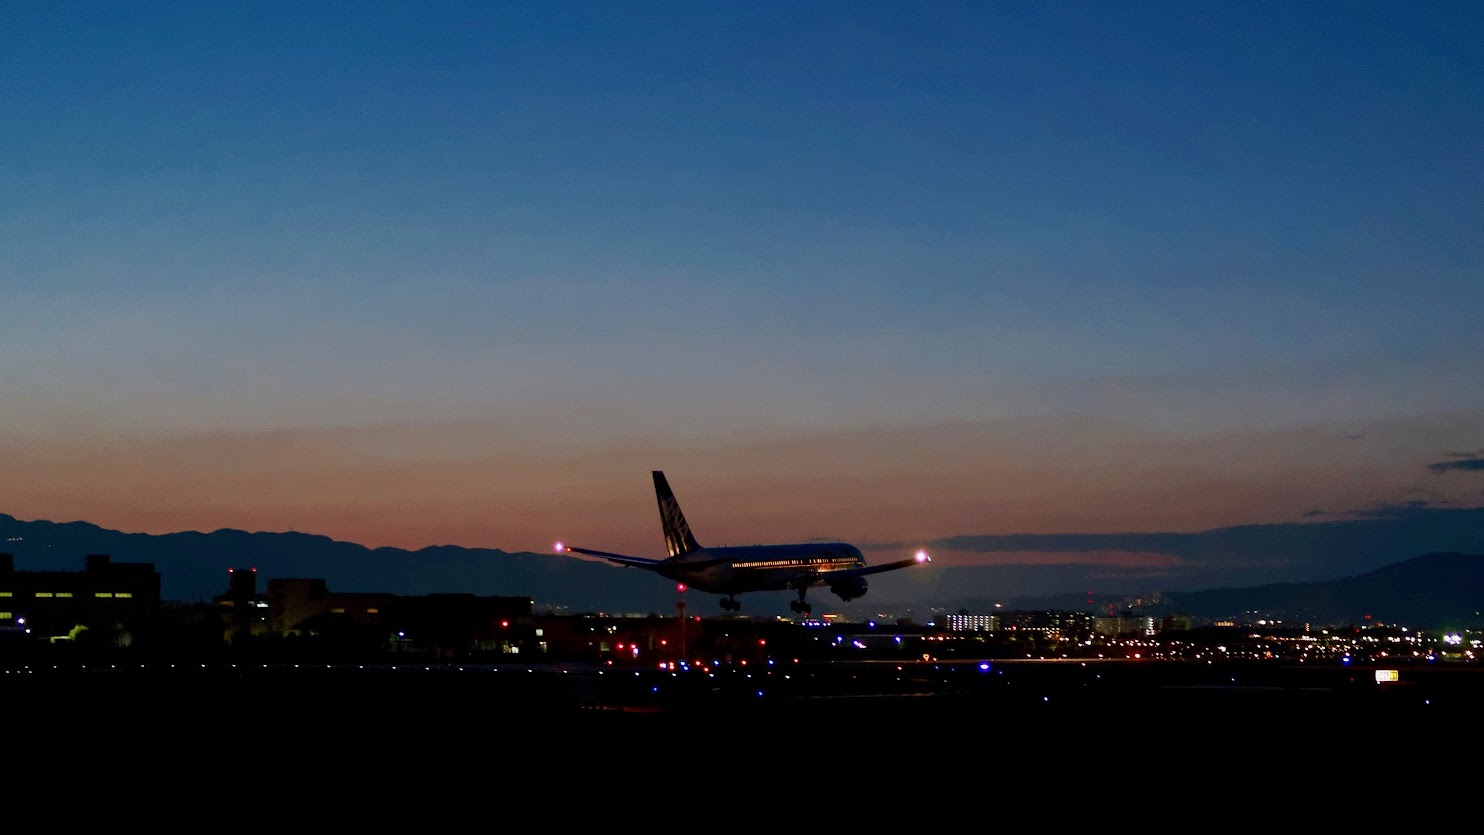 Evening Landing at Osaka (Itami) International Airport